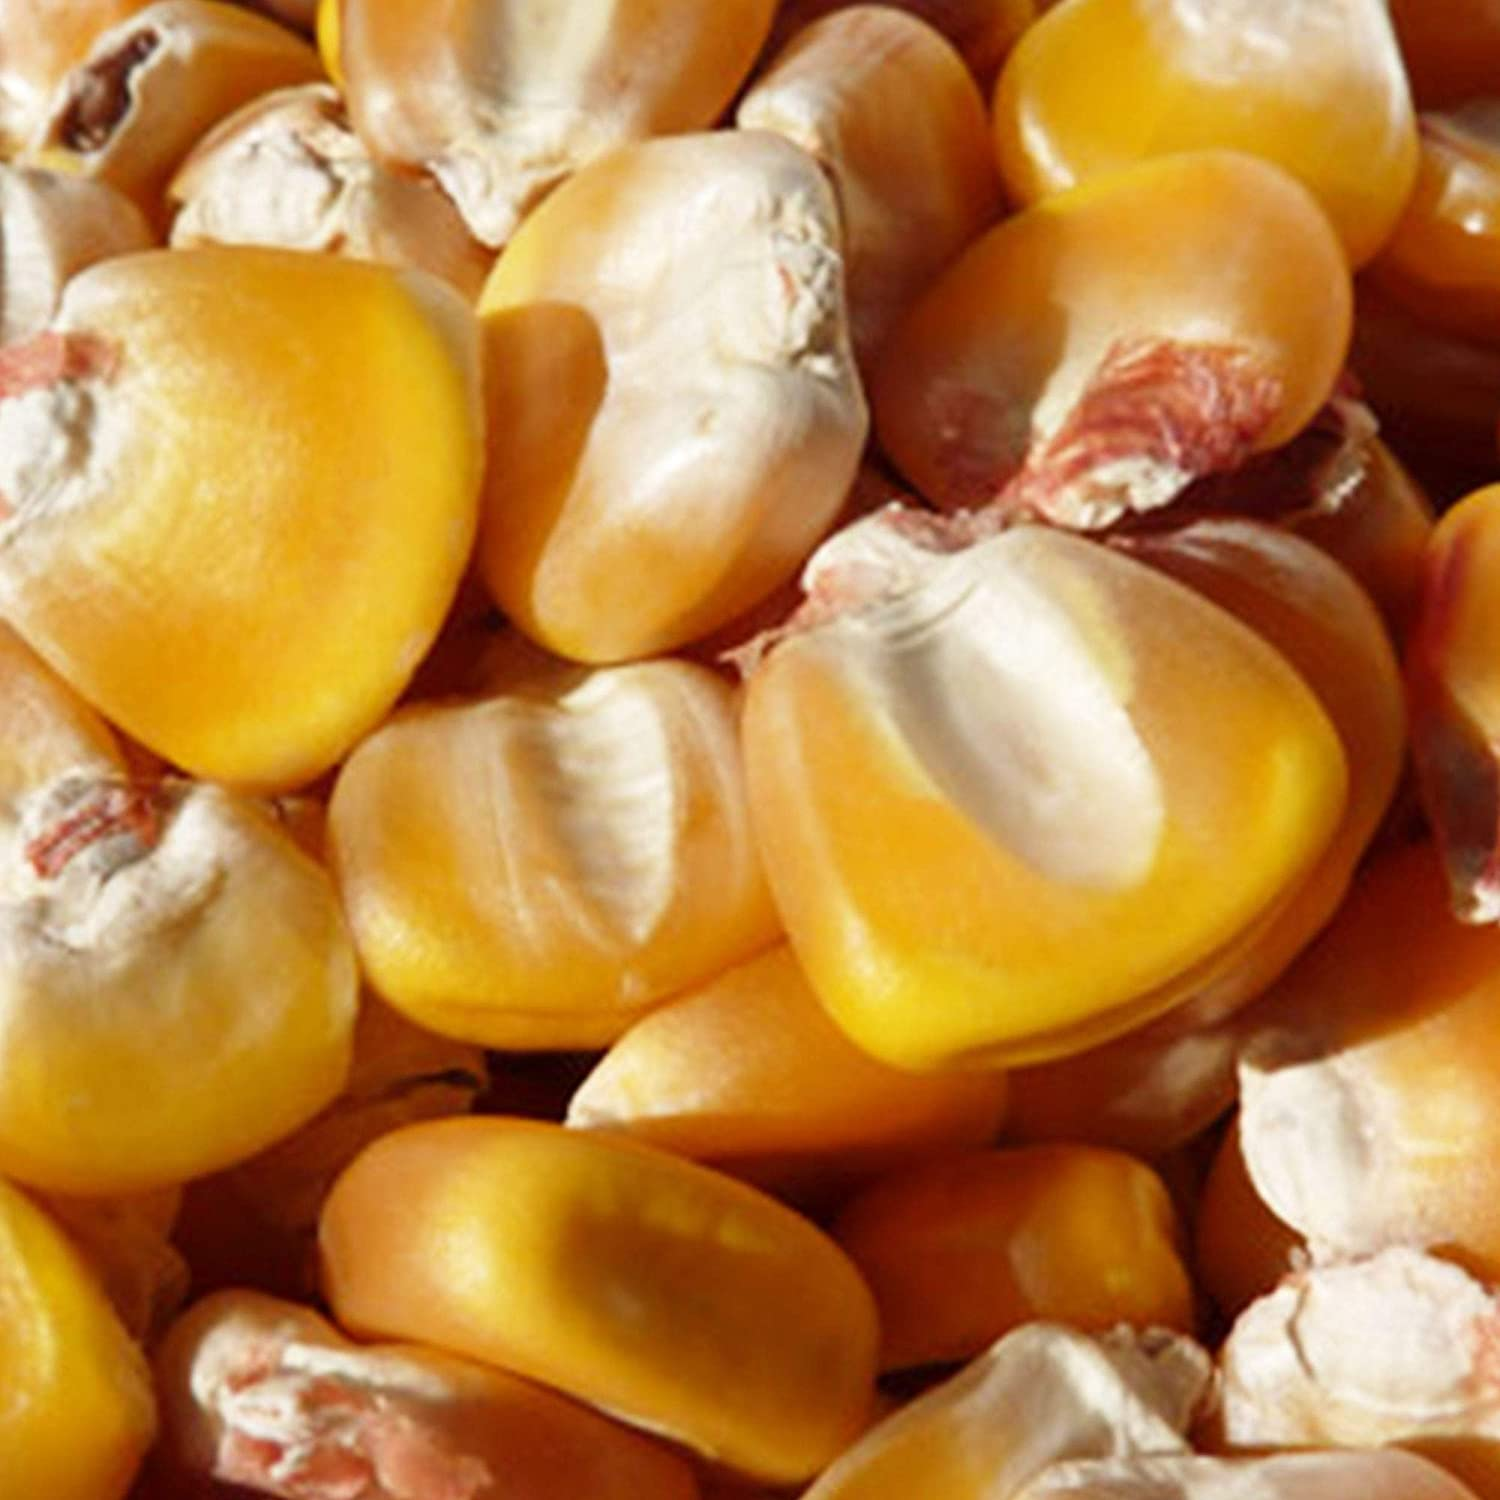 Hickory King Yellow Corn Seeds - 1 LB ~880 Seeds - Non-GMO, Heirloom, Open Pollinated - Vegetable Gardening Seeds